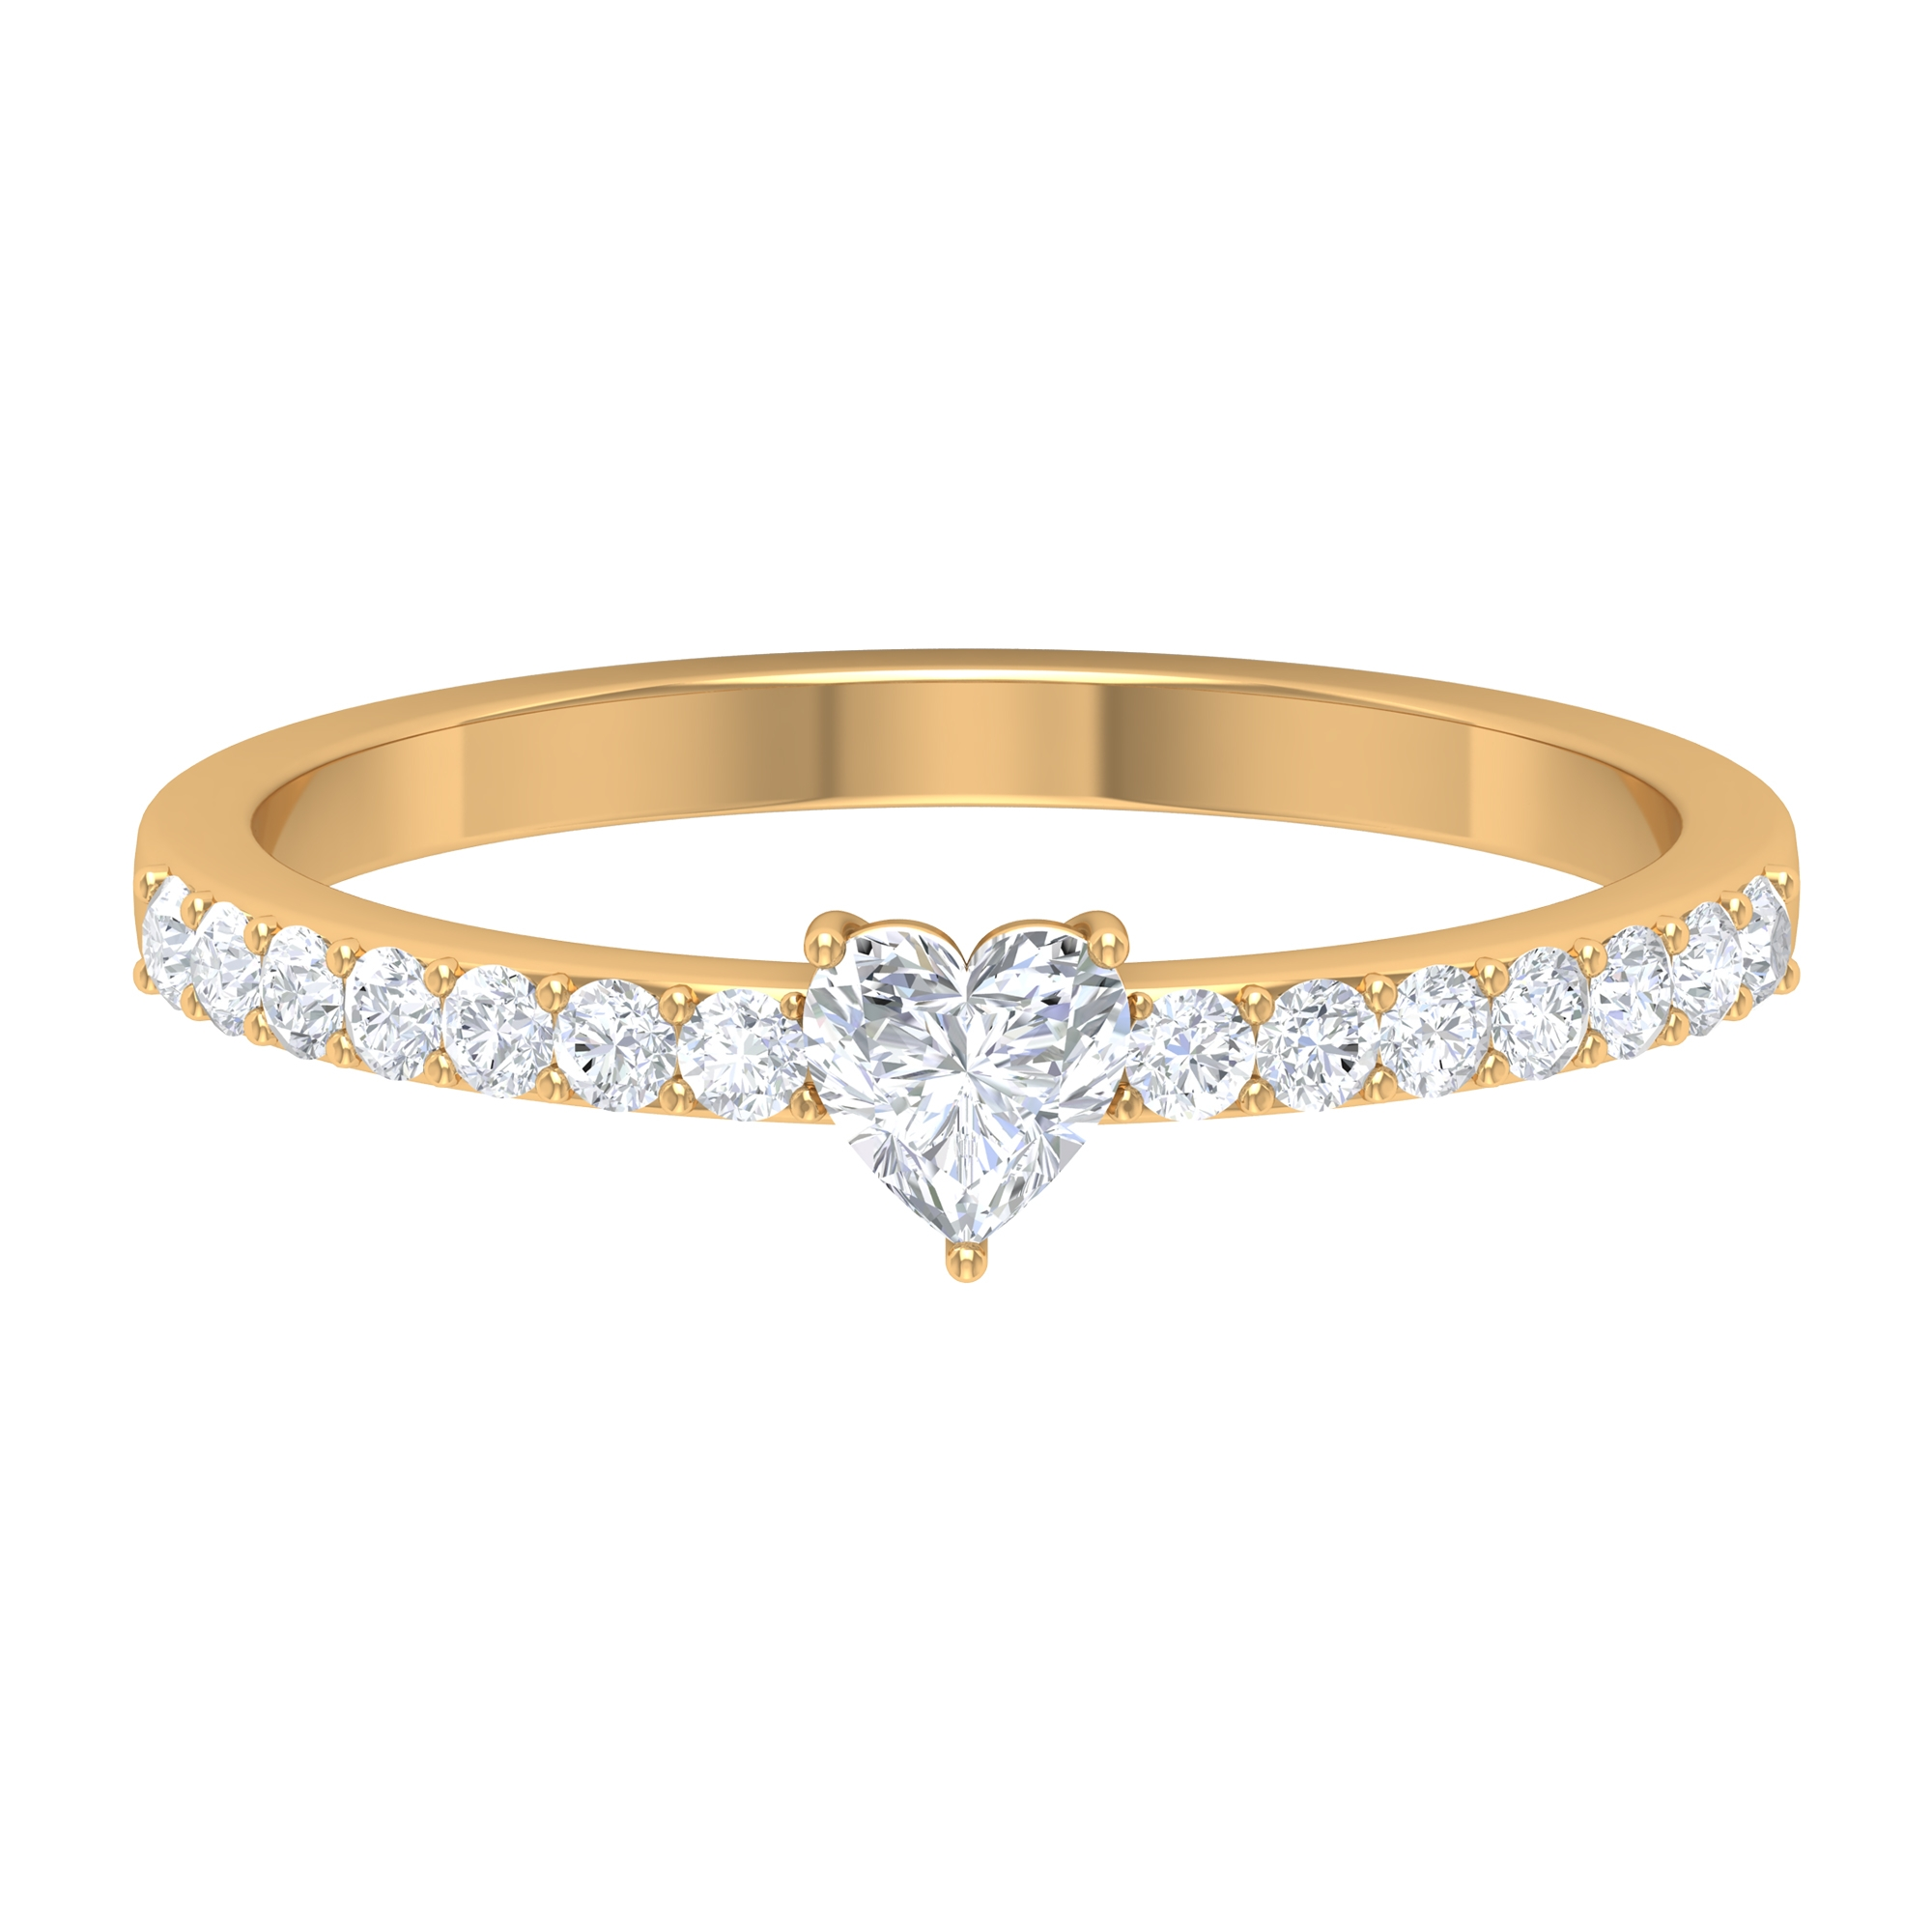 4X4 MM Heart Shape Diamond Promise Ring in Prong Setting with Side Stones